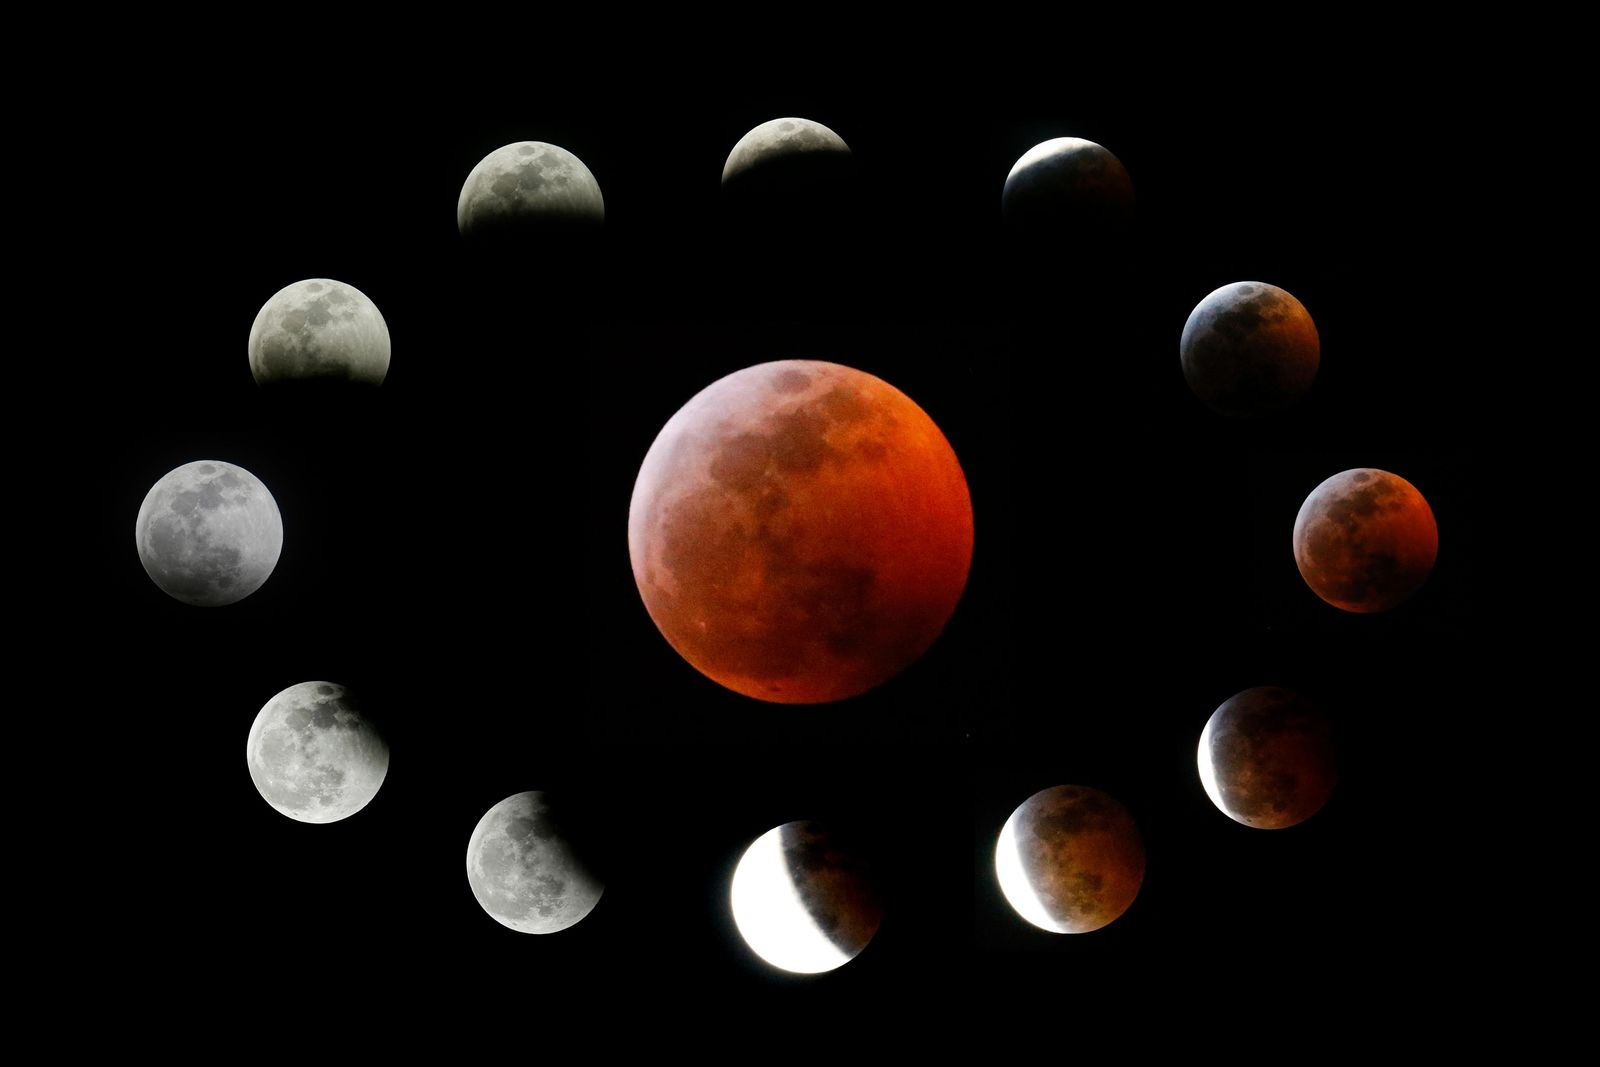 This combination photo shows the totally eclipsed moon, center, and others at the different stages during a total lunar eclipse, as seen from Los Angeles, Sunday, Jan. 20, 2019. It was also the year's first supermoon, when a full moon appears a little bigger and brighter thanks to its slightly closer position. During totality, the moon will look red because of sunlight scattering off Earth's atmosphere. That's why an eclipsed moon is sometimes known as a blood moon. In January, the full moon is also sometimes known as the wolf moon or great spirit moon. (AP Photo/Ringo H.W. Chiu)